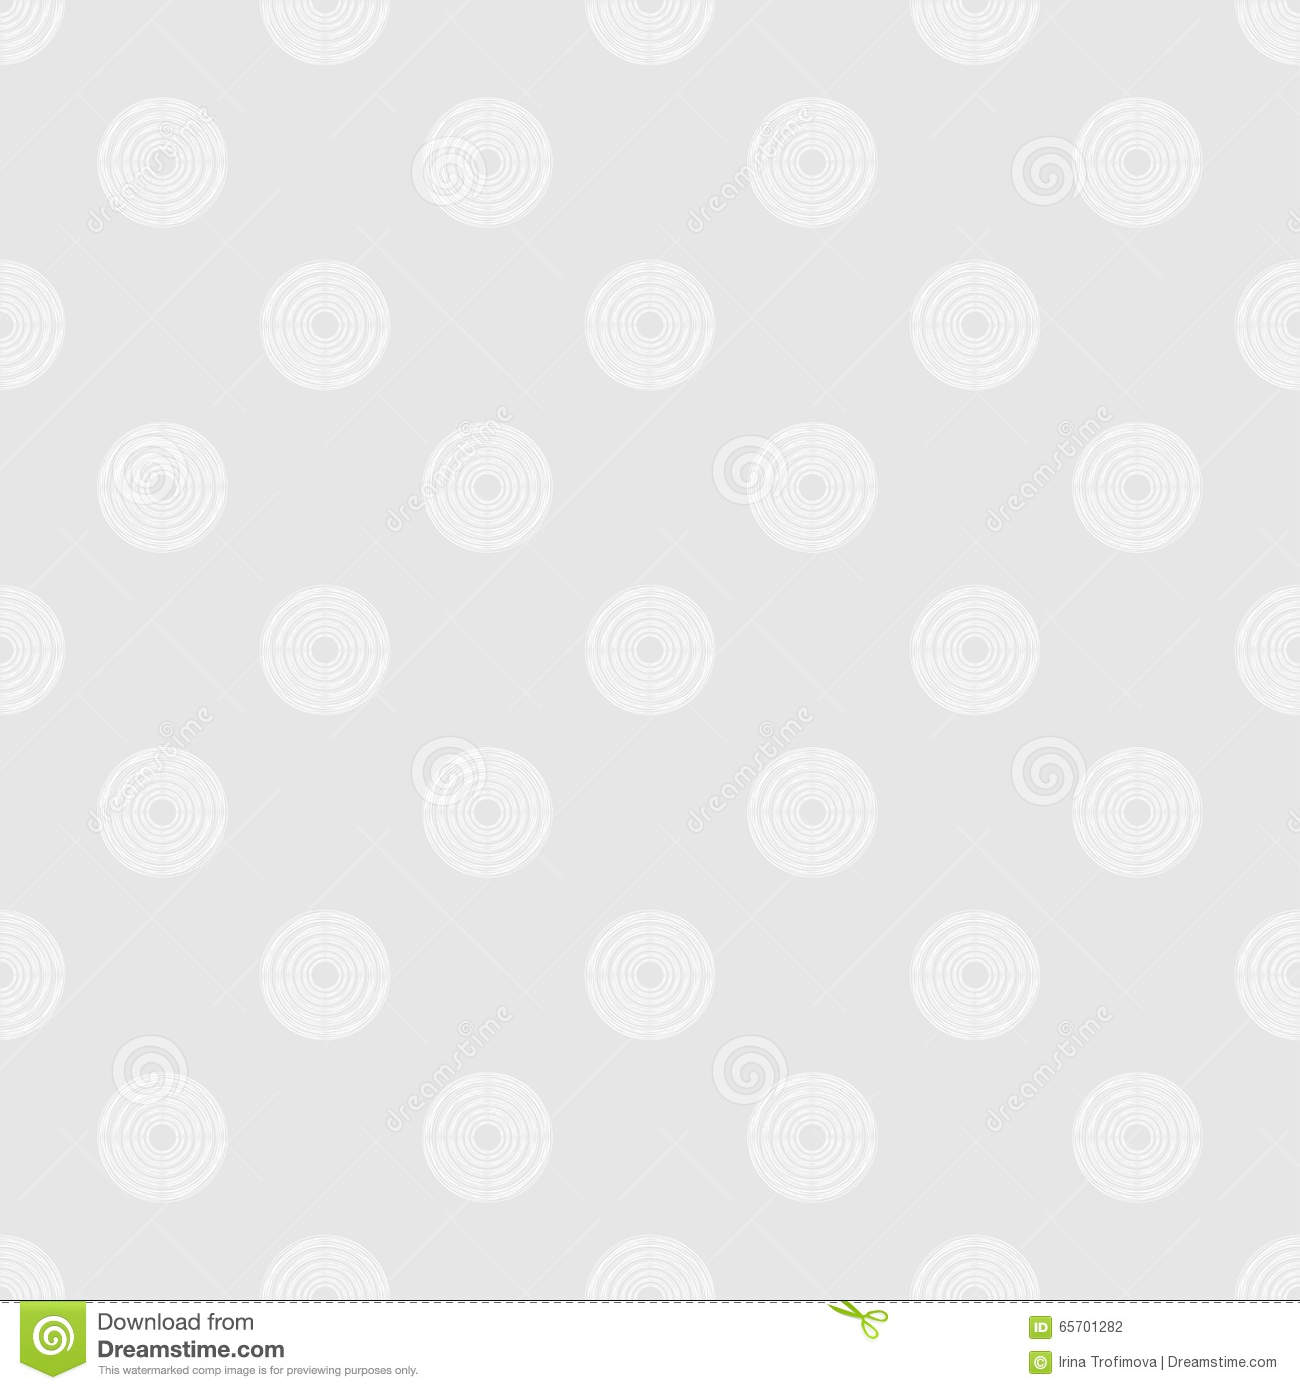 08cd3a3582ed Seamless pattern of polka dot in white circles of multiple lines on light  grey background